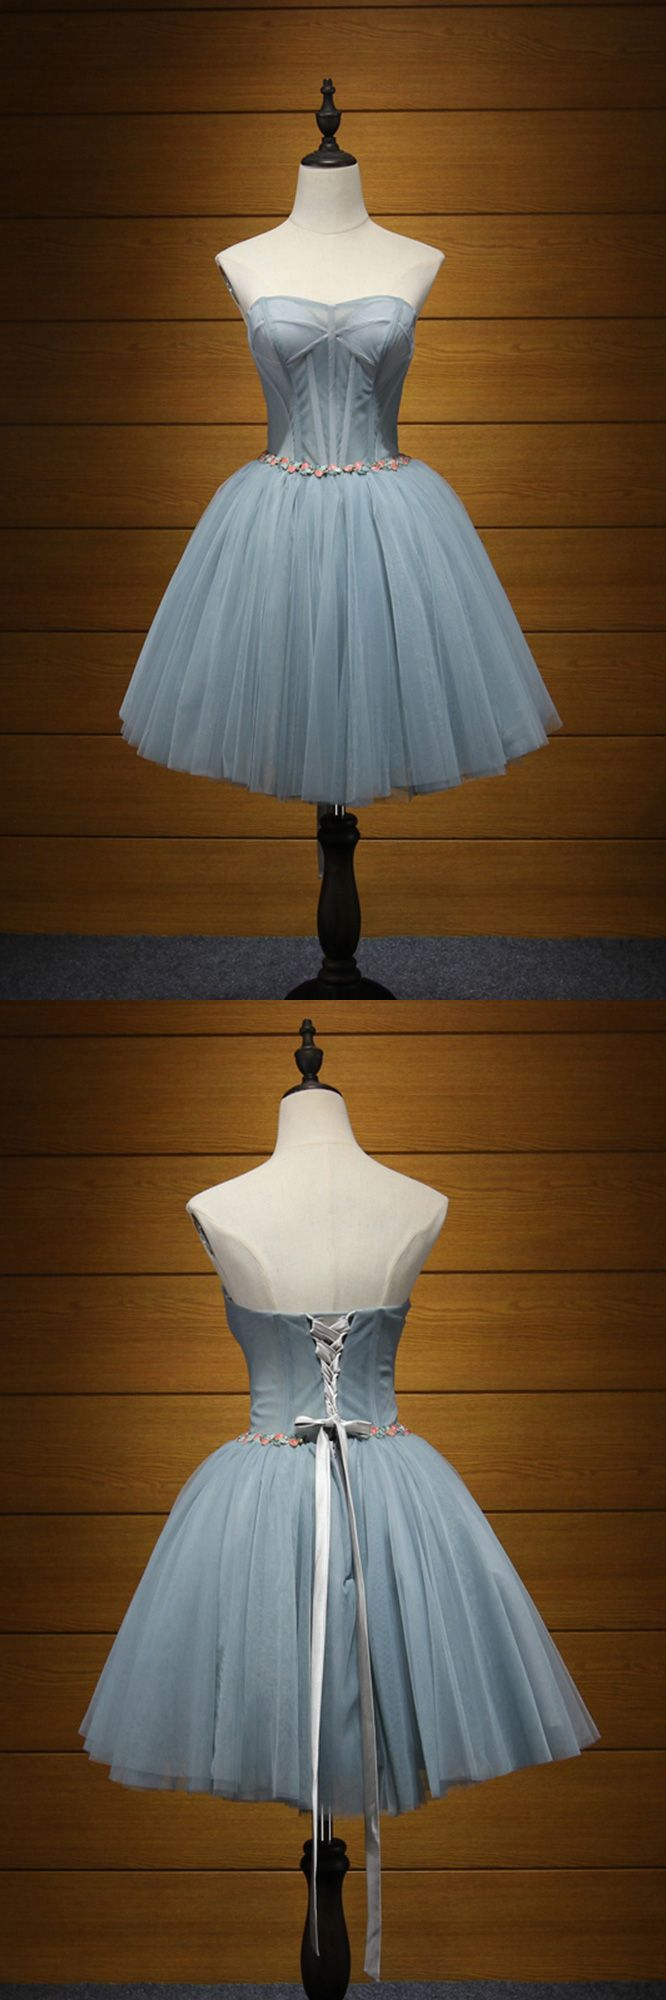 Only $149, Simpel Strapless Short Homecoming Dress With Beaded Waist #AKE18176 at #SheProm. SheProm is an online store with thousands of dresses, range from Prom,Homecoming,Party,Graduation,Blue,A Line Dresses,Short Dresses and so on. Not only selling formal dresses, more and more trendy dress styles will be updated daily to our store. With low price and high quality guaranteed, you will definitely like shopping from us.